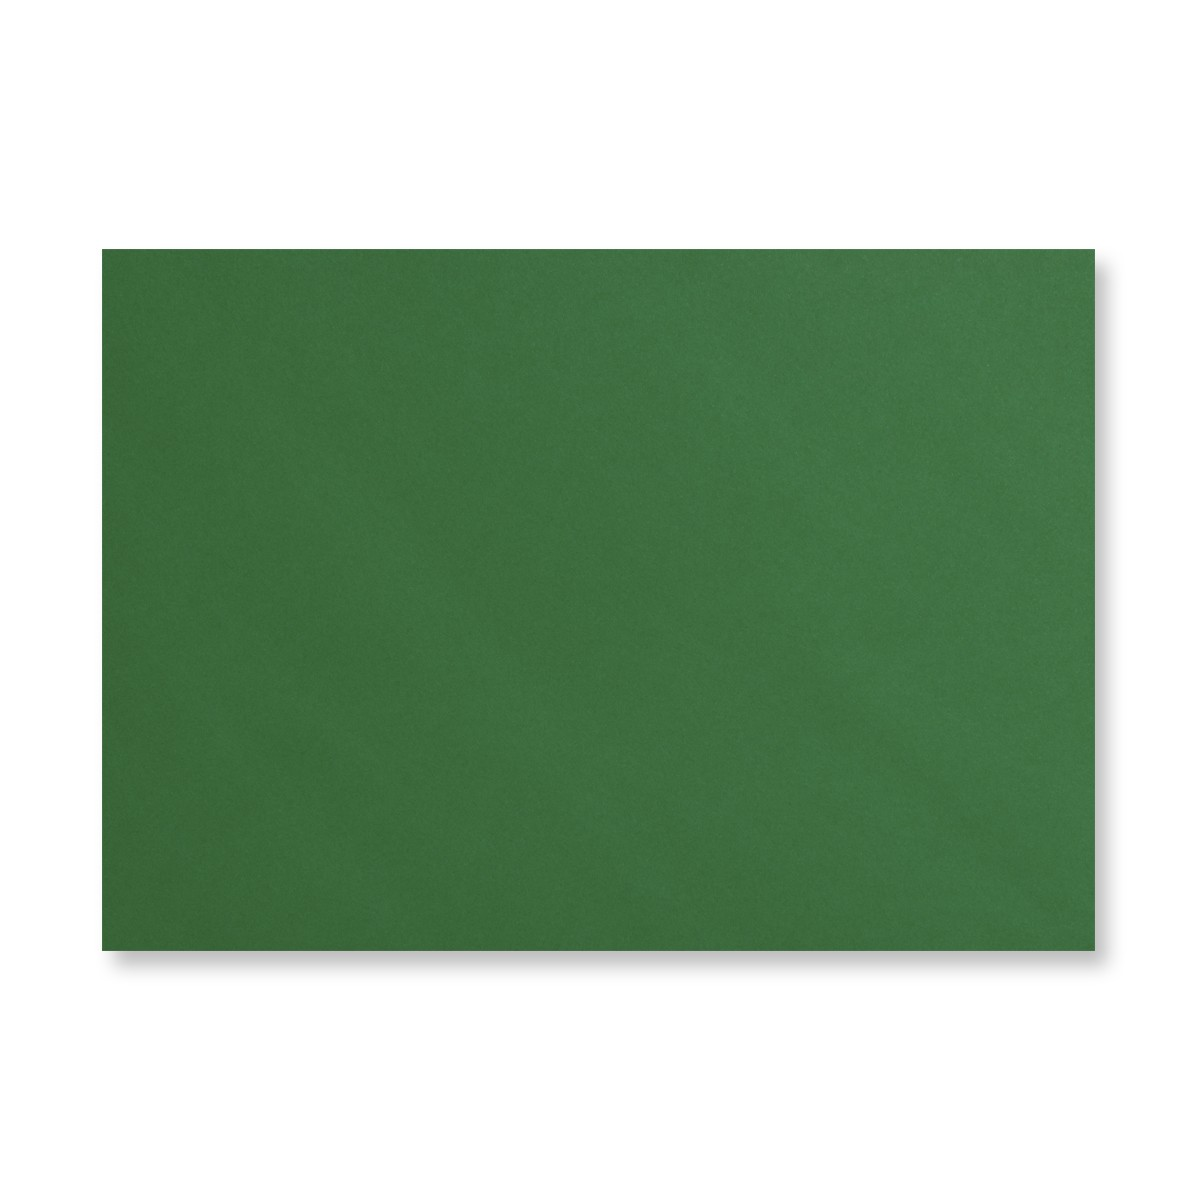 DARK GREEN 152 x 216mm ENVELOPES 120GSM